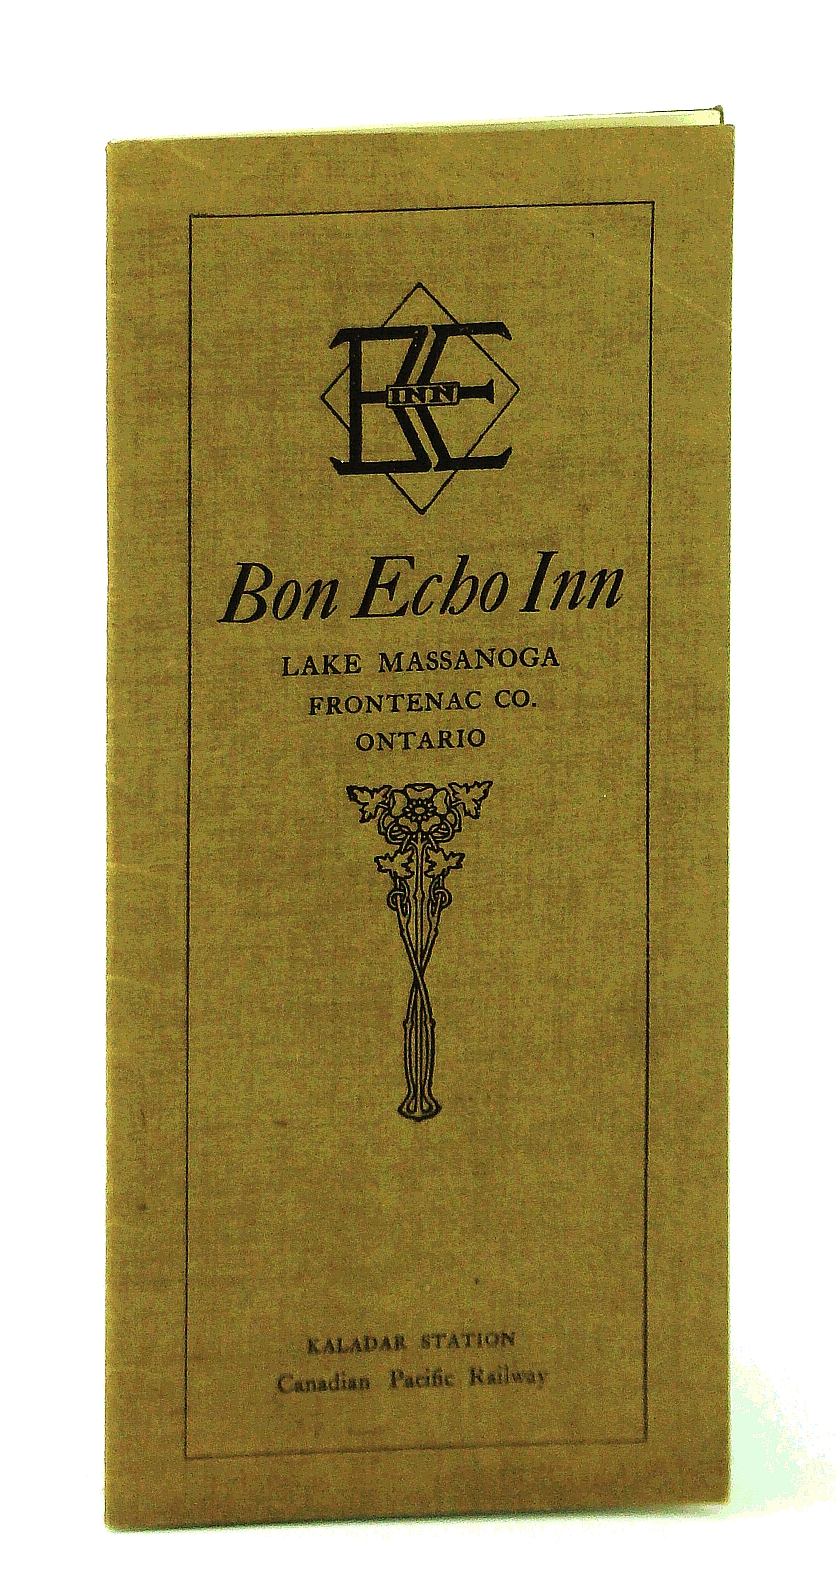 Image for Bon Echo Inn, Lake Massanoga, Frontenac Co. [County], Ontario - Vintage Promotional Brochure for This Famed Ontario Highlands Summer Resort